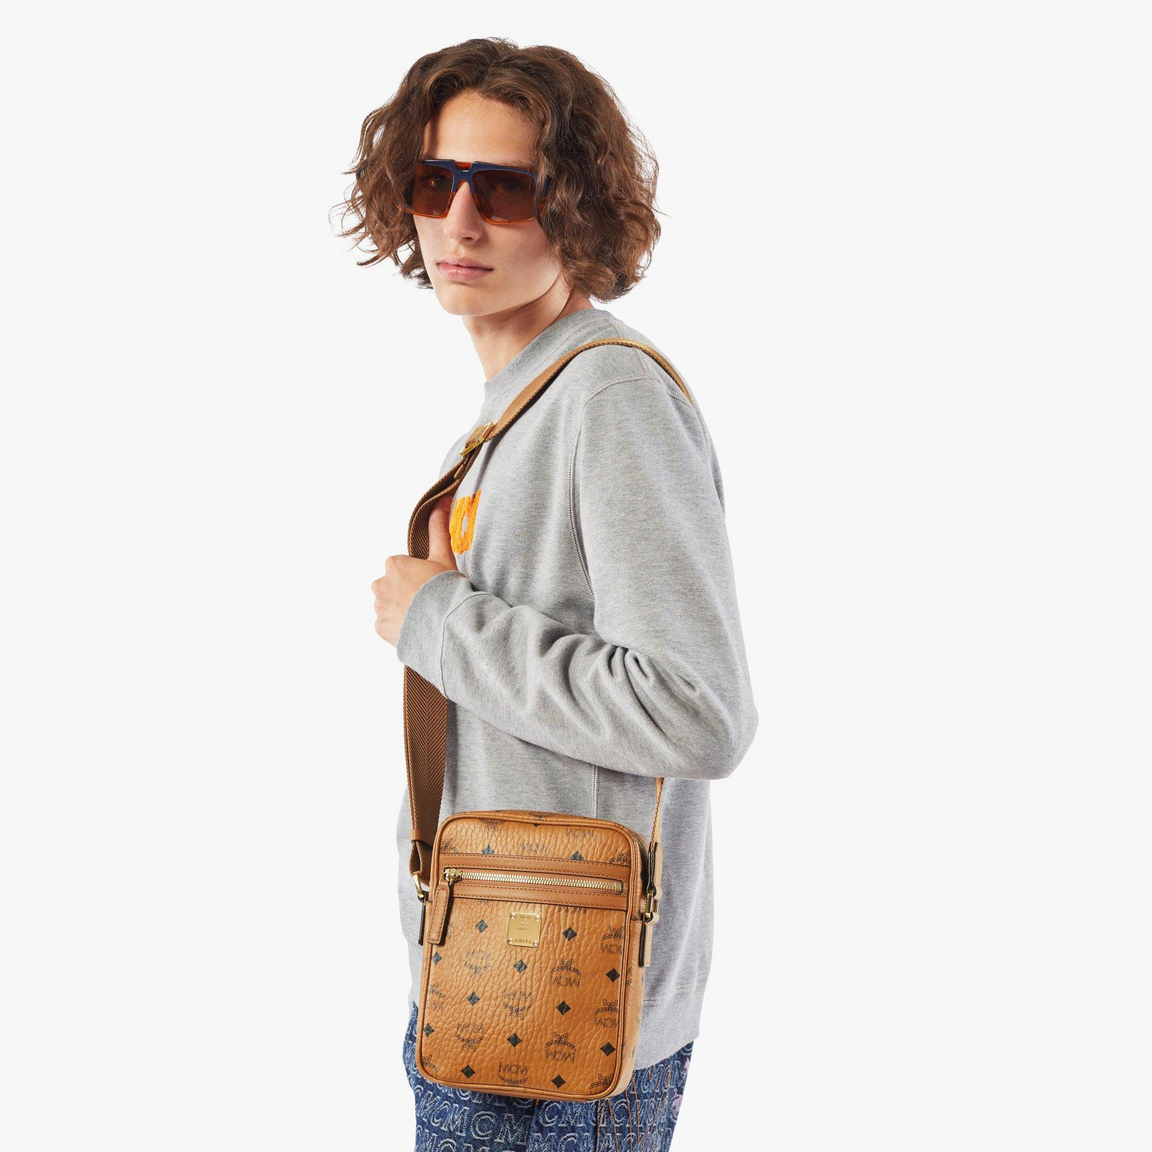 N/S Klassik Crossbody in Visetos